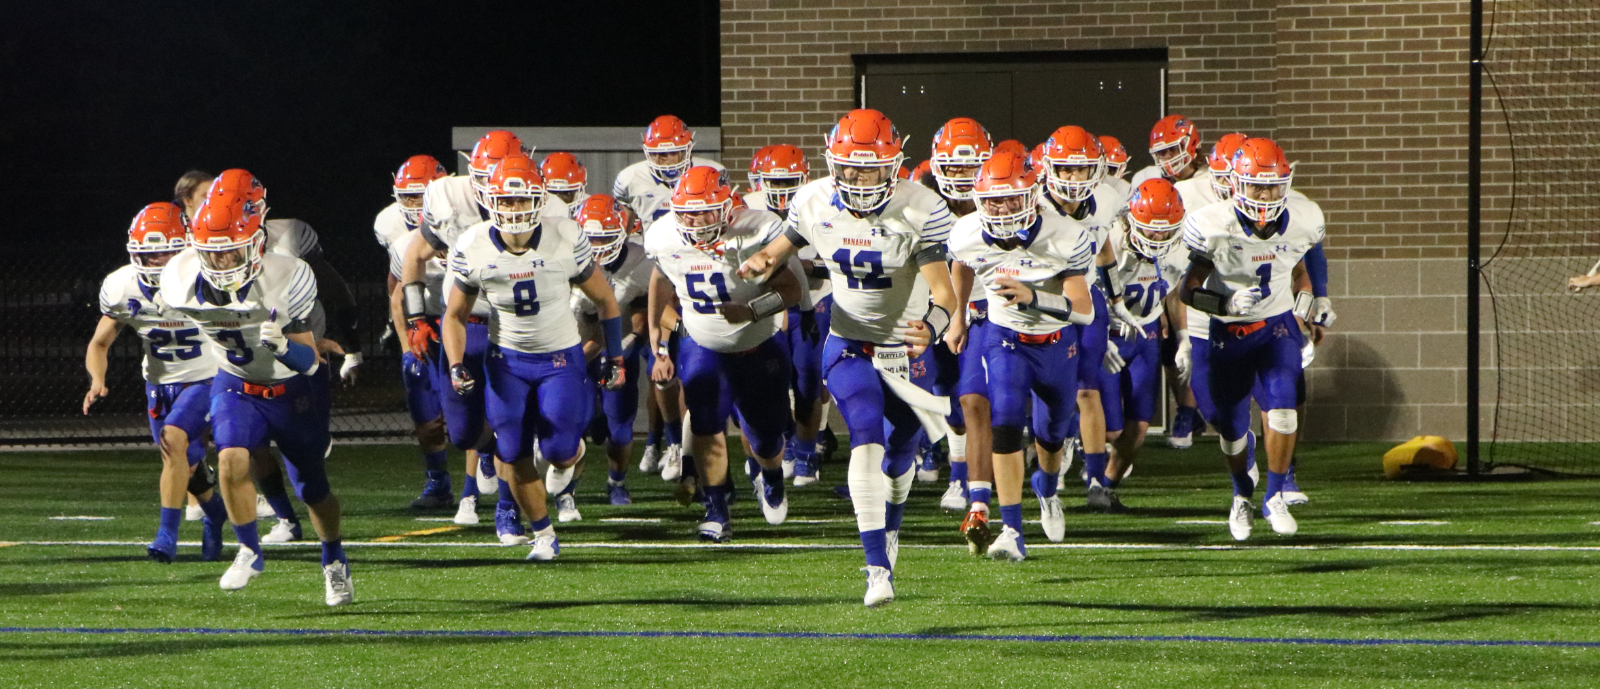 Admission Tickets for Home Football Games